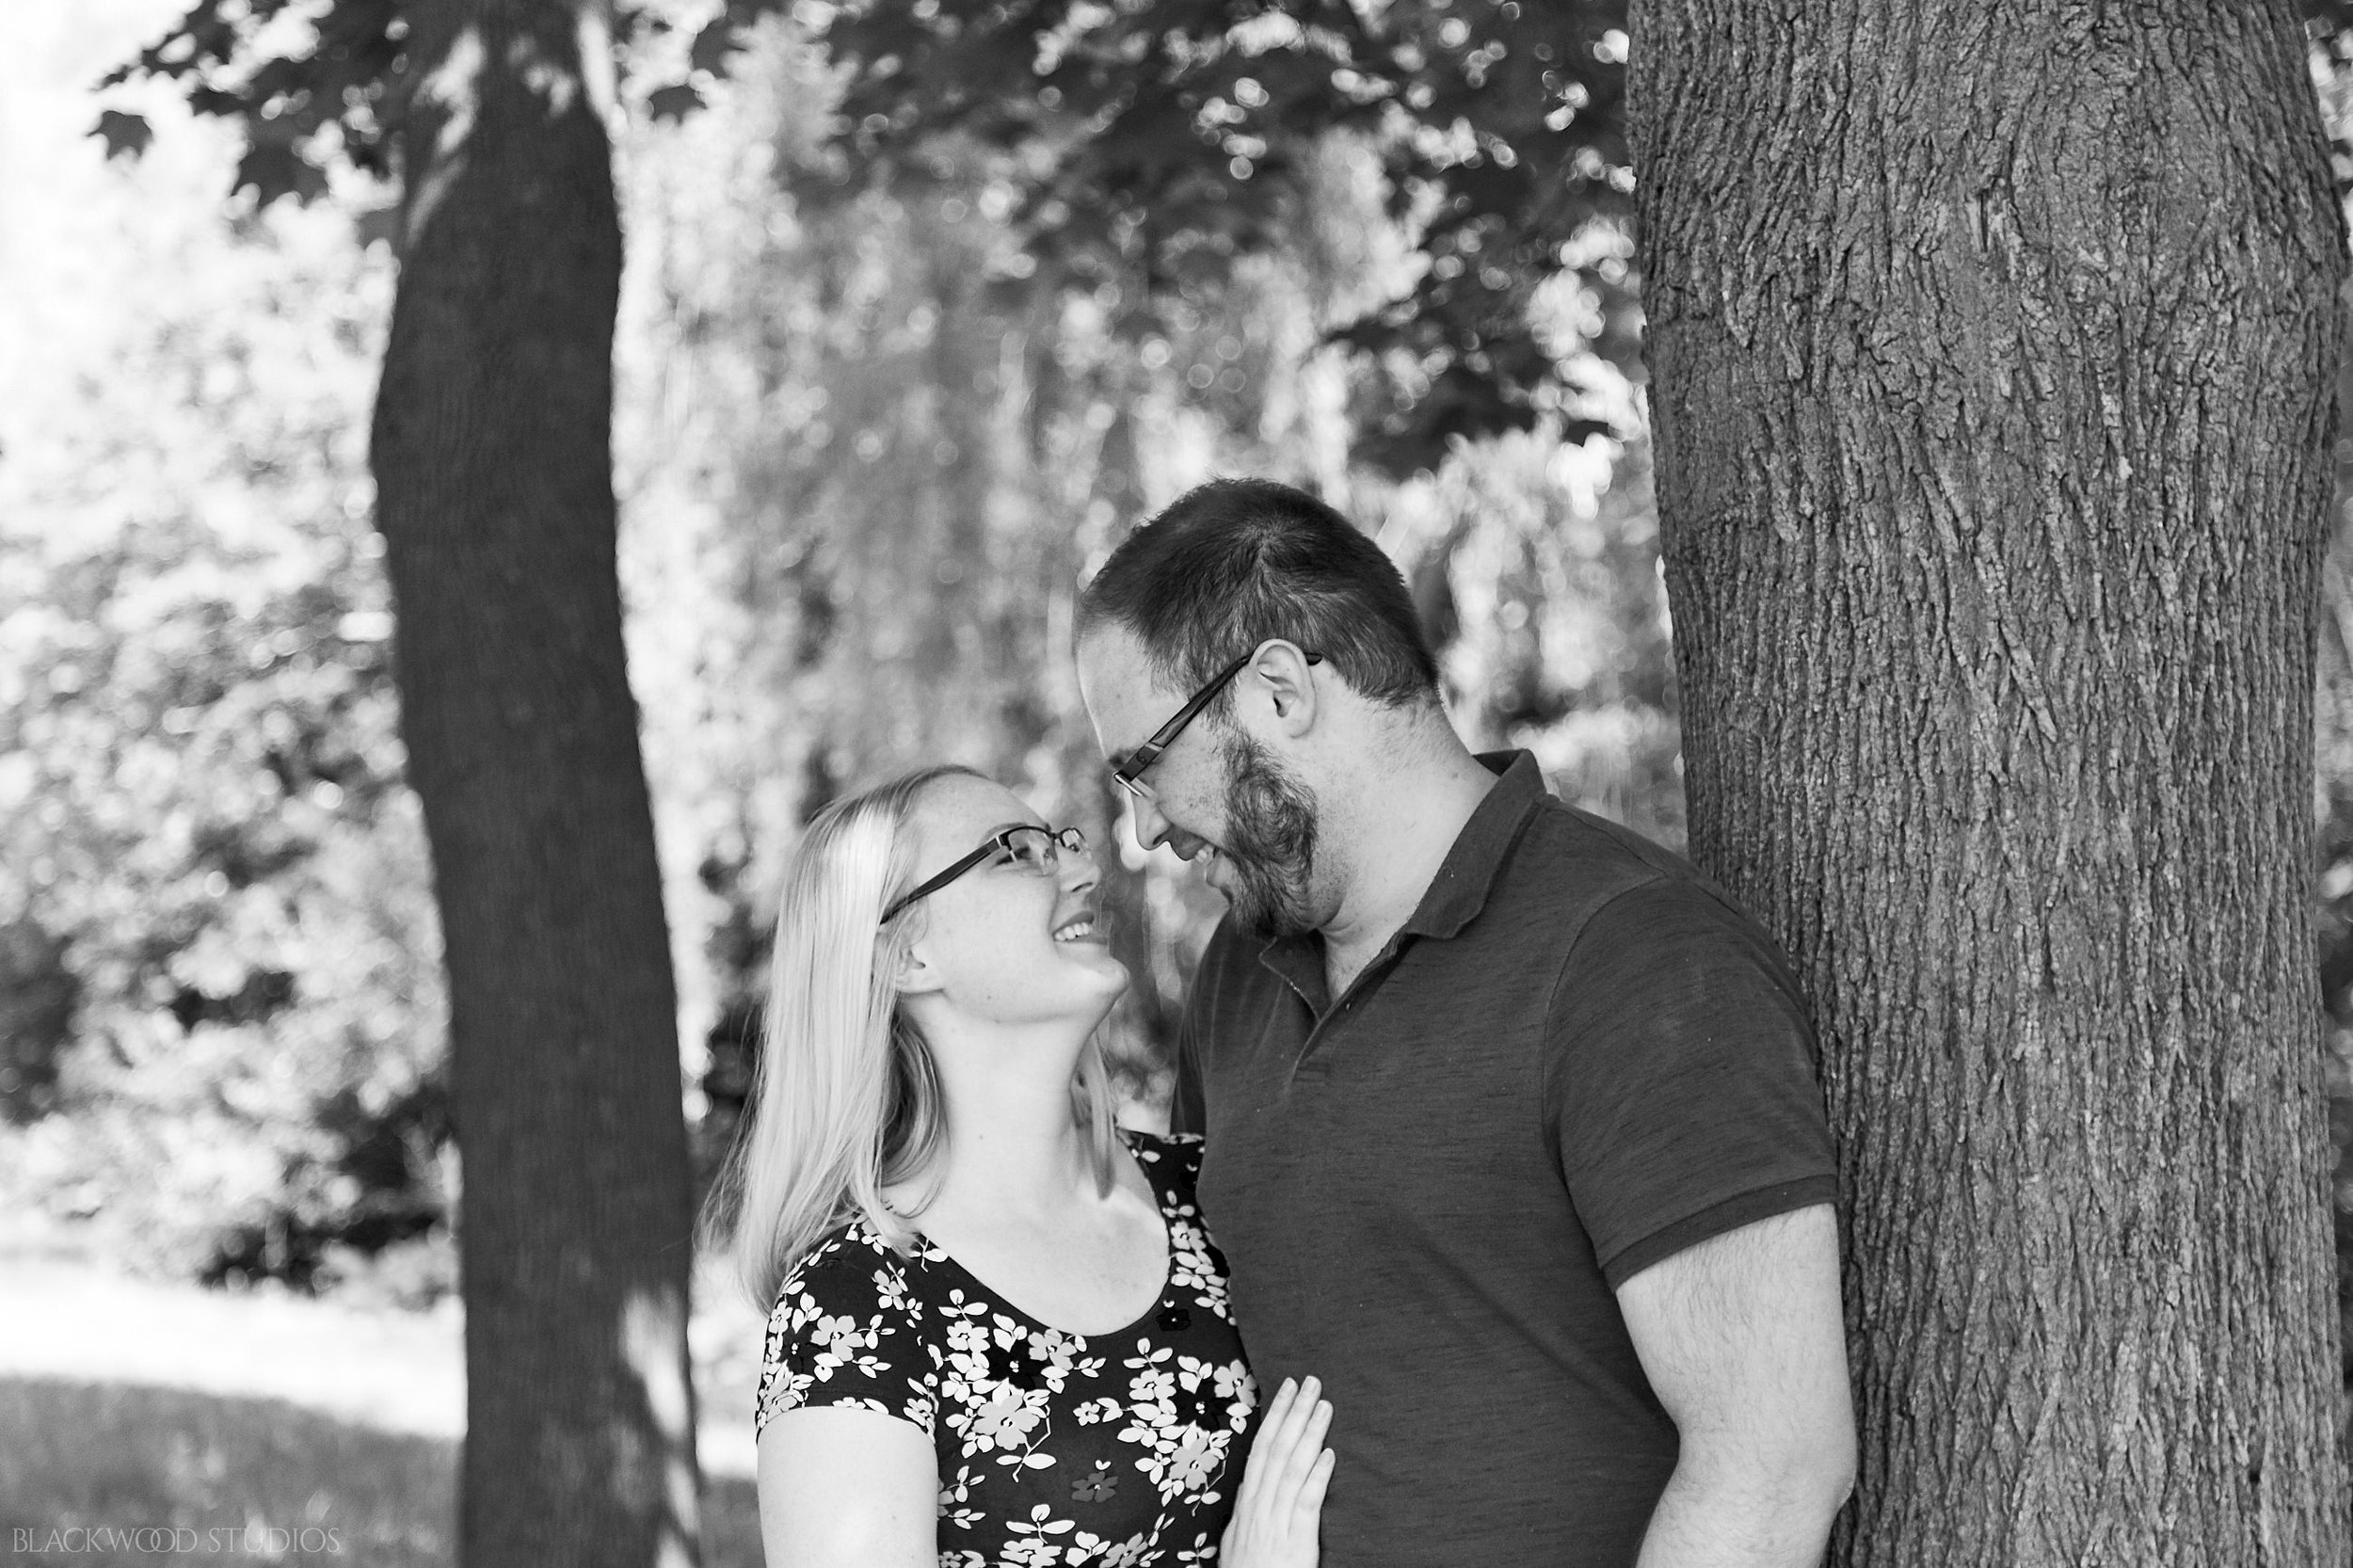 Brenden and Crystal Engagement. Photo by Blackwood Studios. www.blackwoodstudios.co